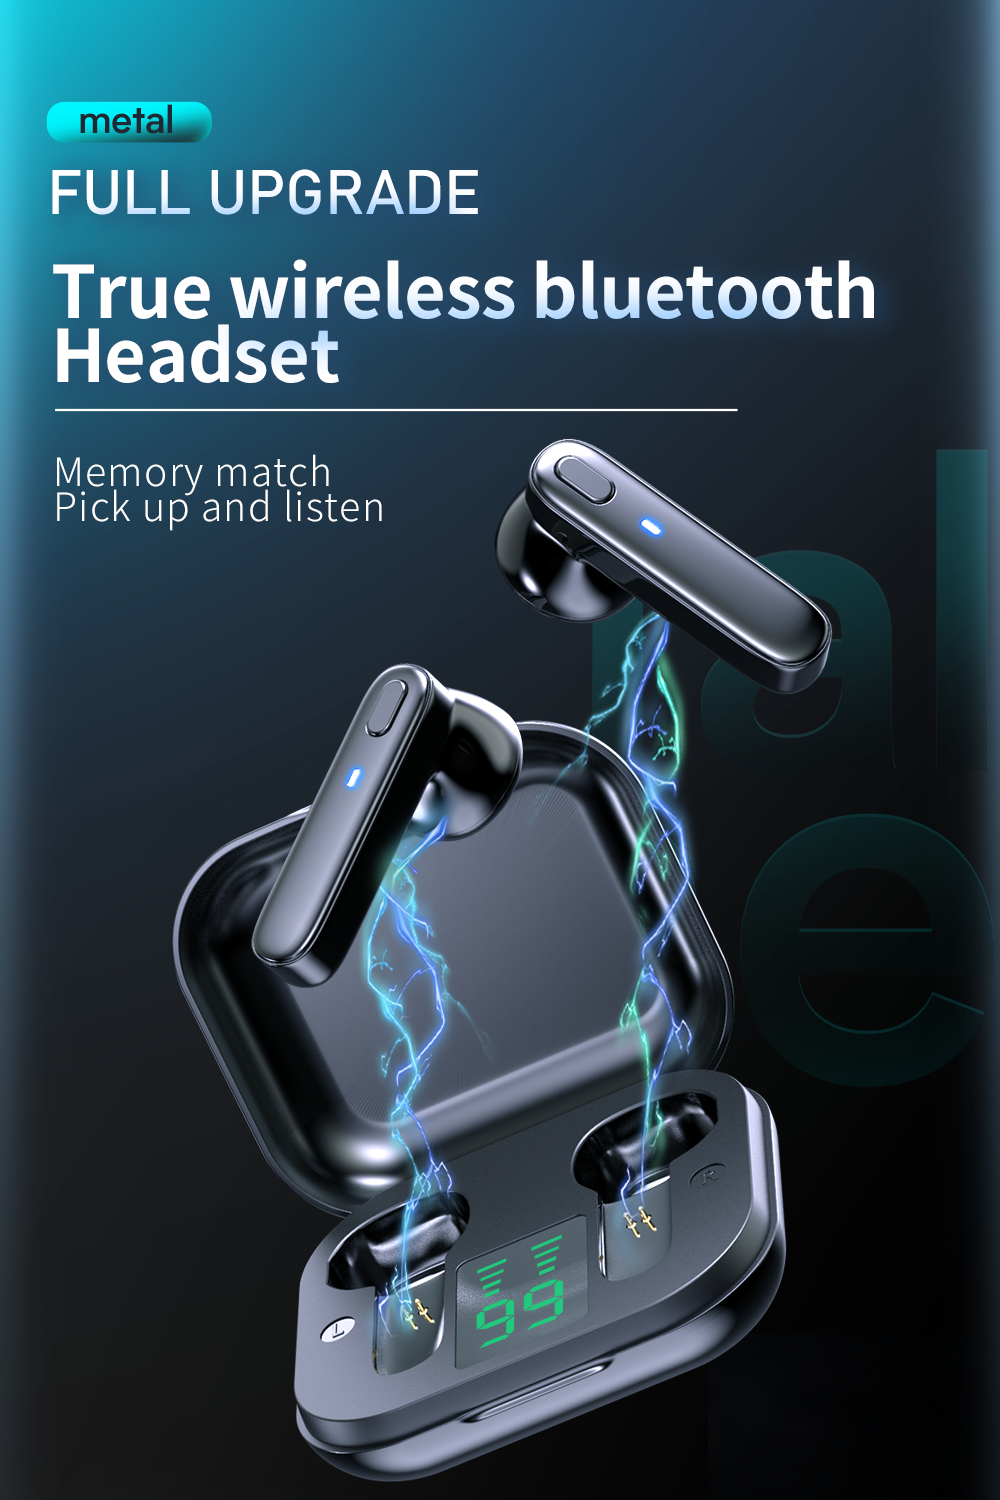 H3e4481b31a2c433abd4a0d8967711b6ce R20 TWS Earphone Bluetooth Wireless Headset Waterproof Deep Bass Earbuds True Wireless Stereo Headphone With Mic Sport Earphone